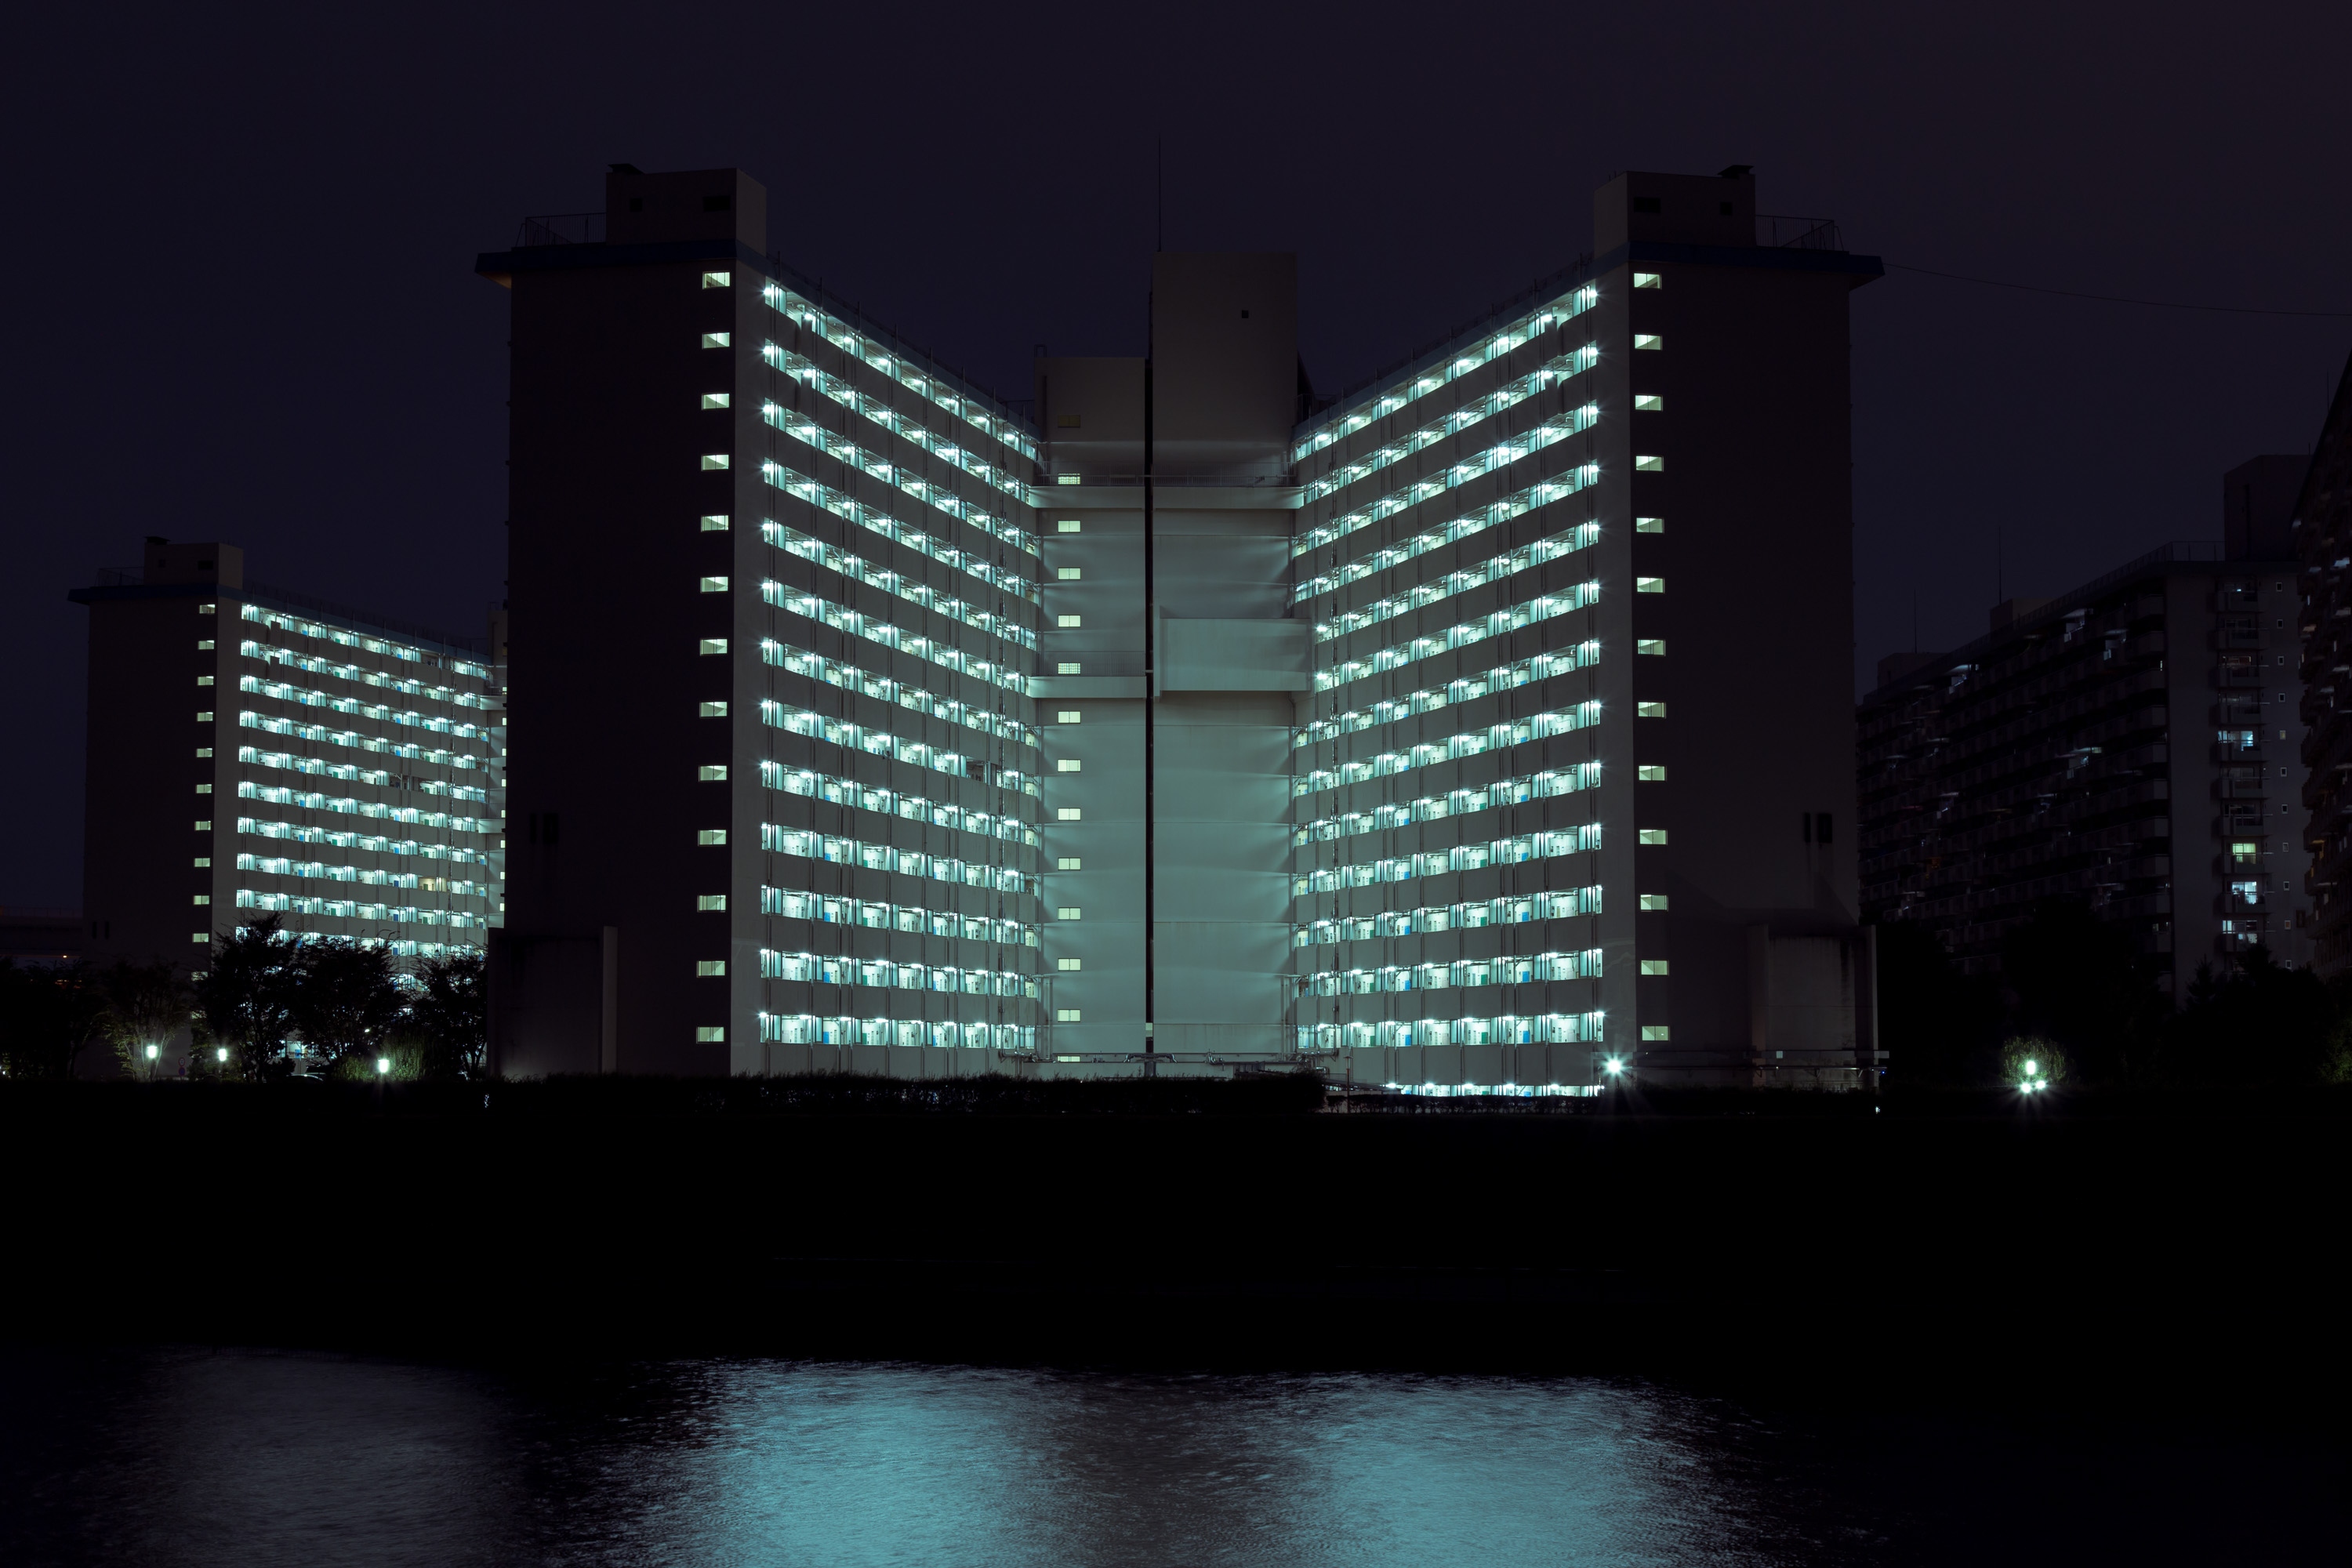 Danchi Dreams Photographic Series by Cody Ellingham